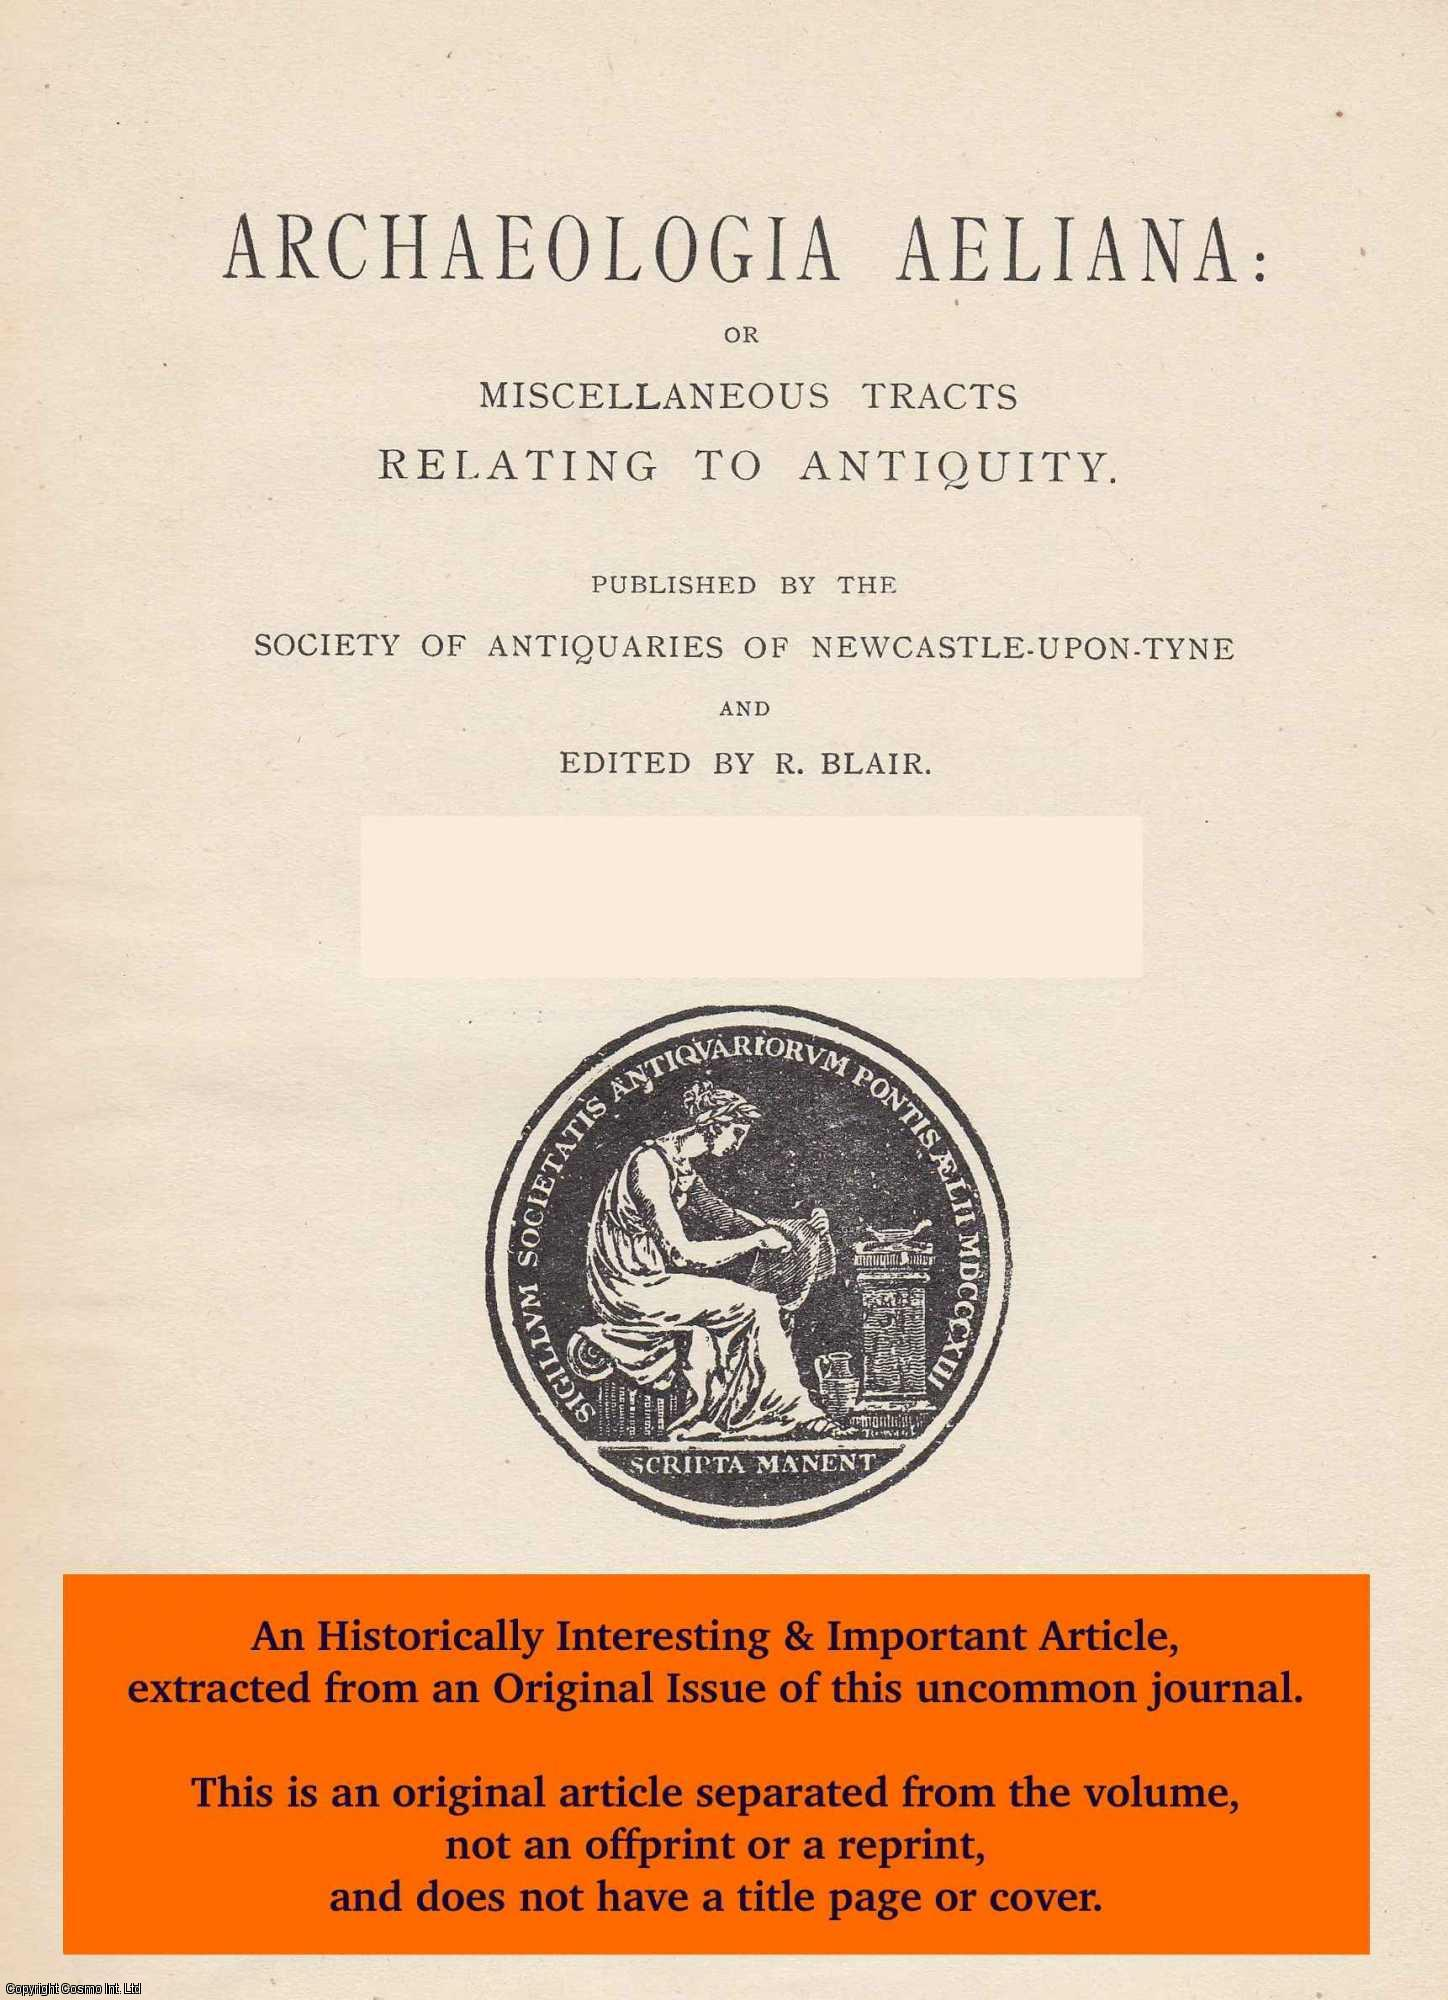 BIRLEY, ERIC - Three Roman Inscriptions. An original article from The Archaeologia Aeliana: or Miscellaneous Tracts Relating to Antiquity, 1933.